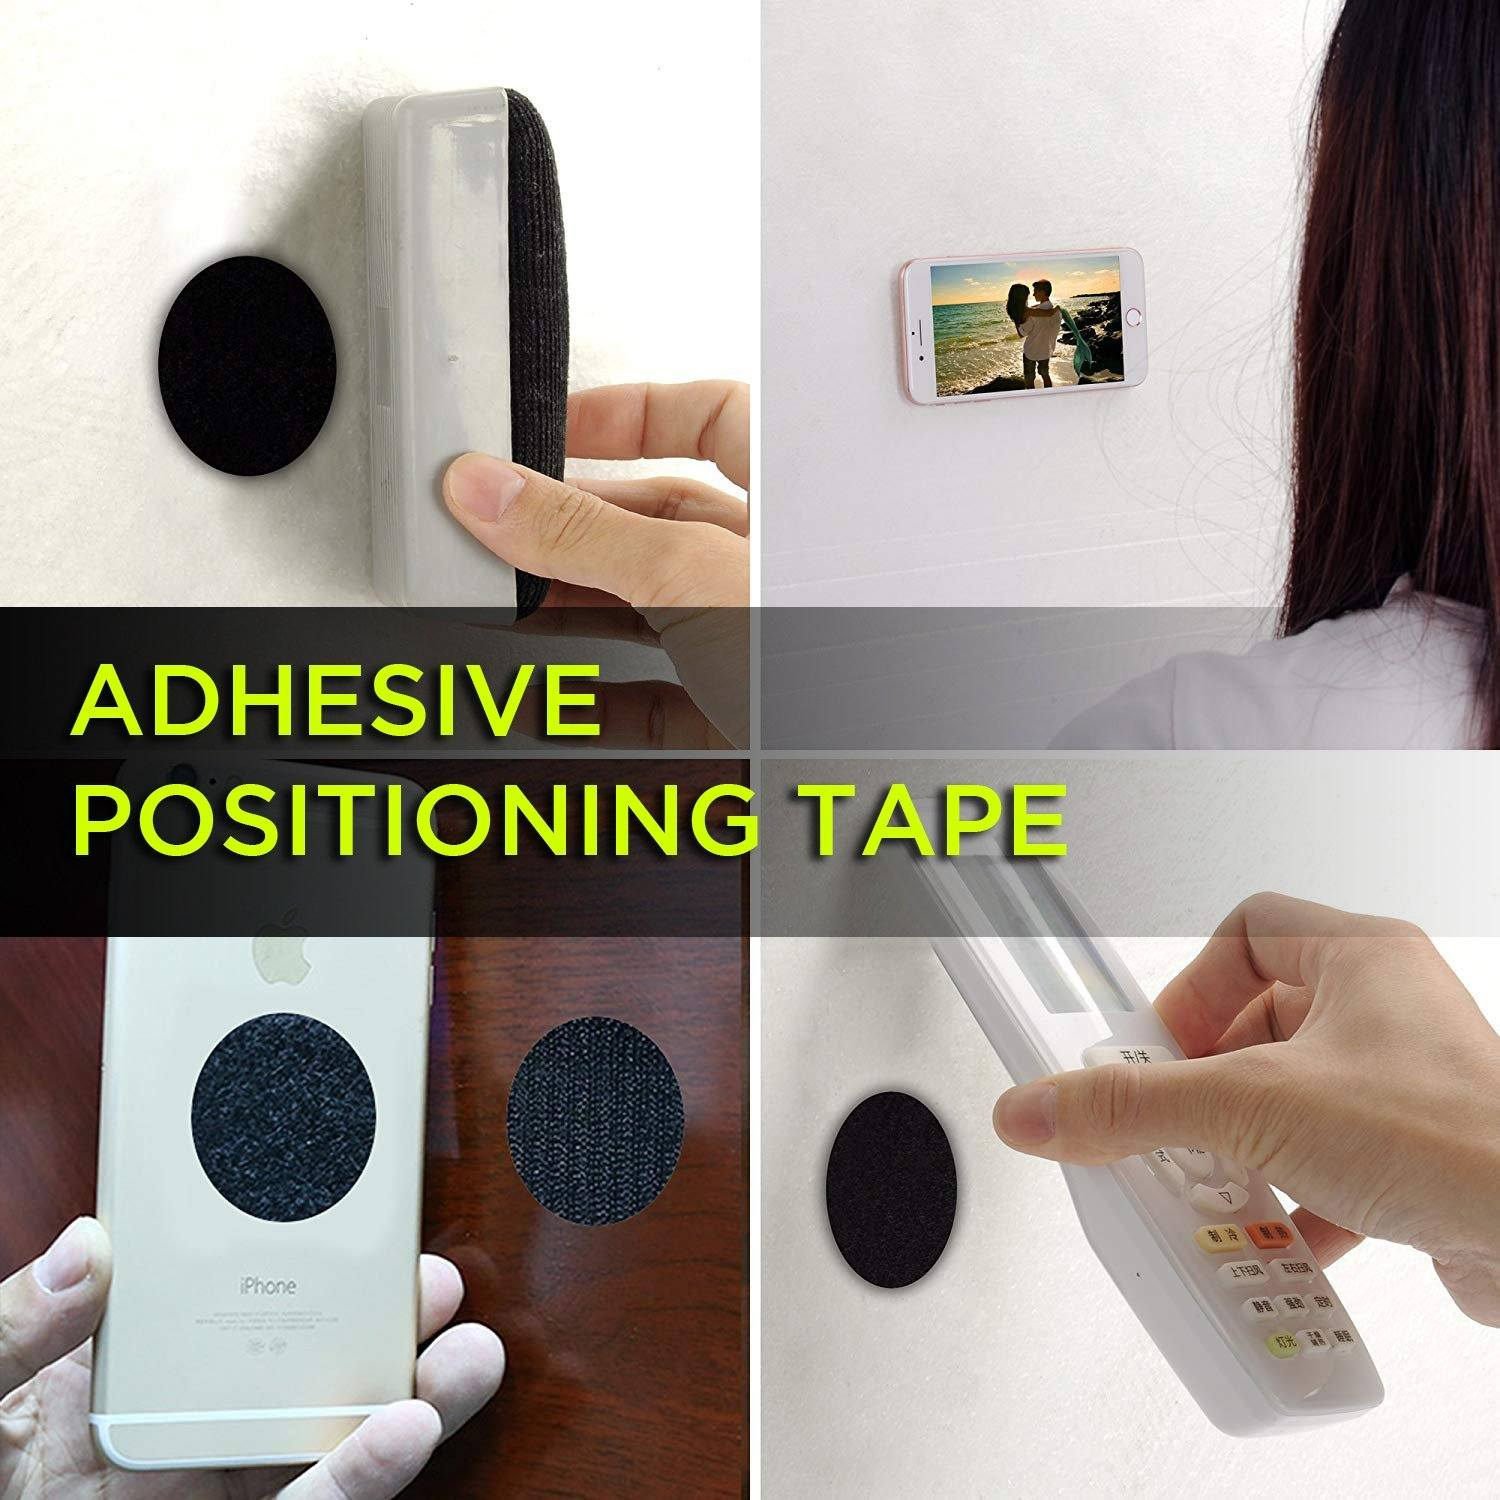 60mm Adhesive Positioning Tape